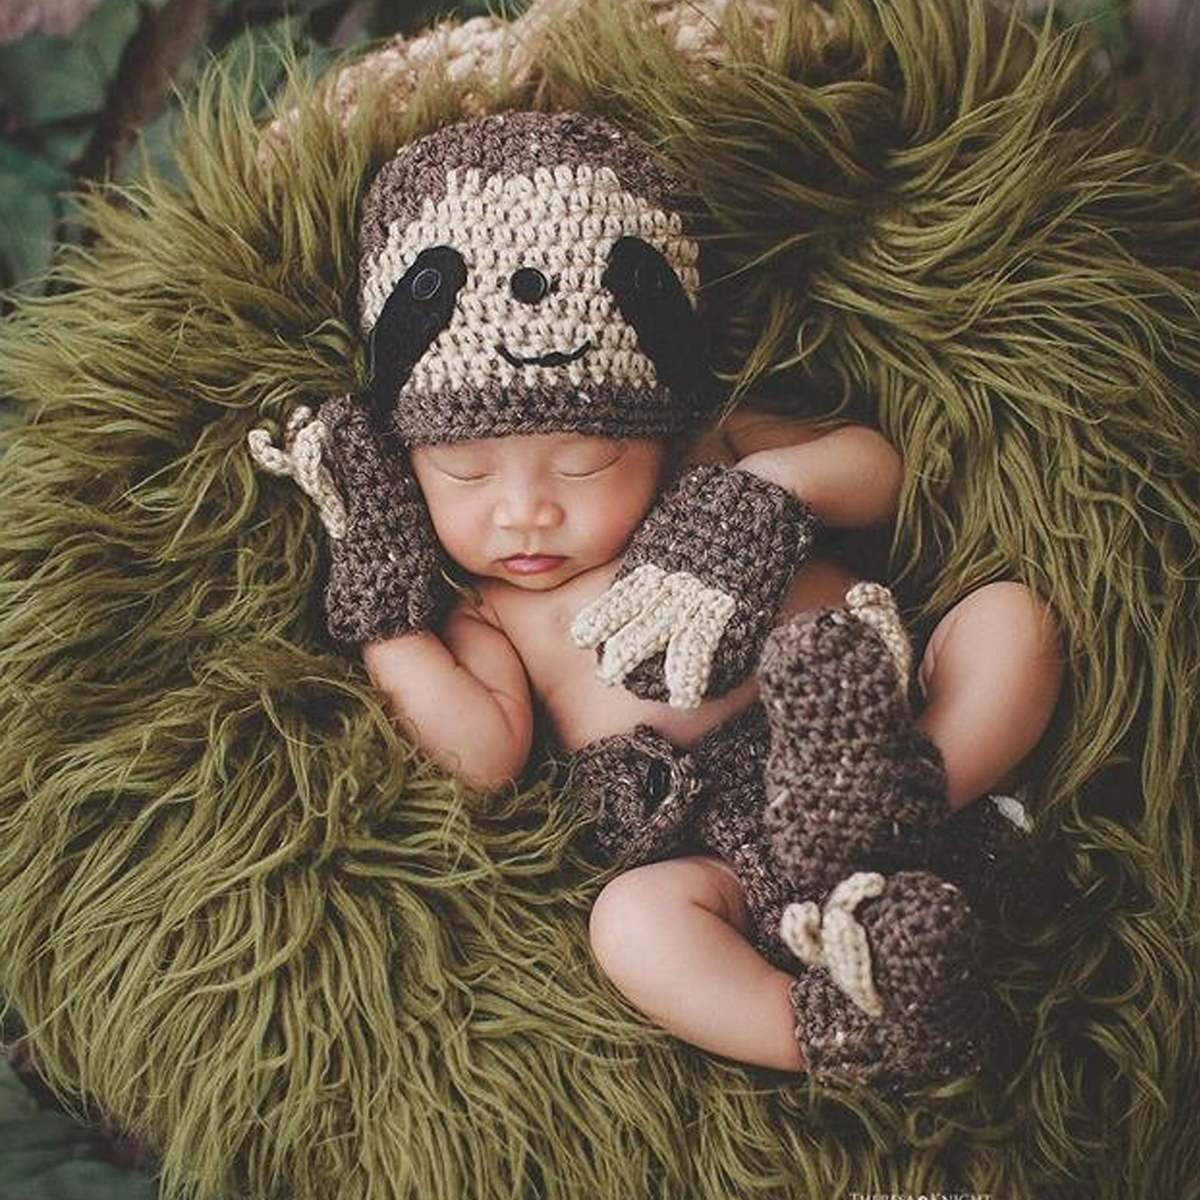 baby dressed as a sloth